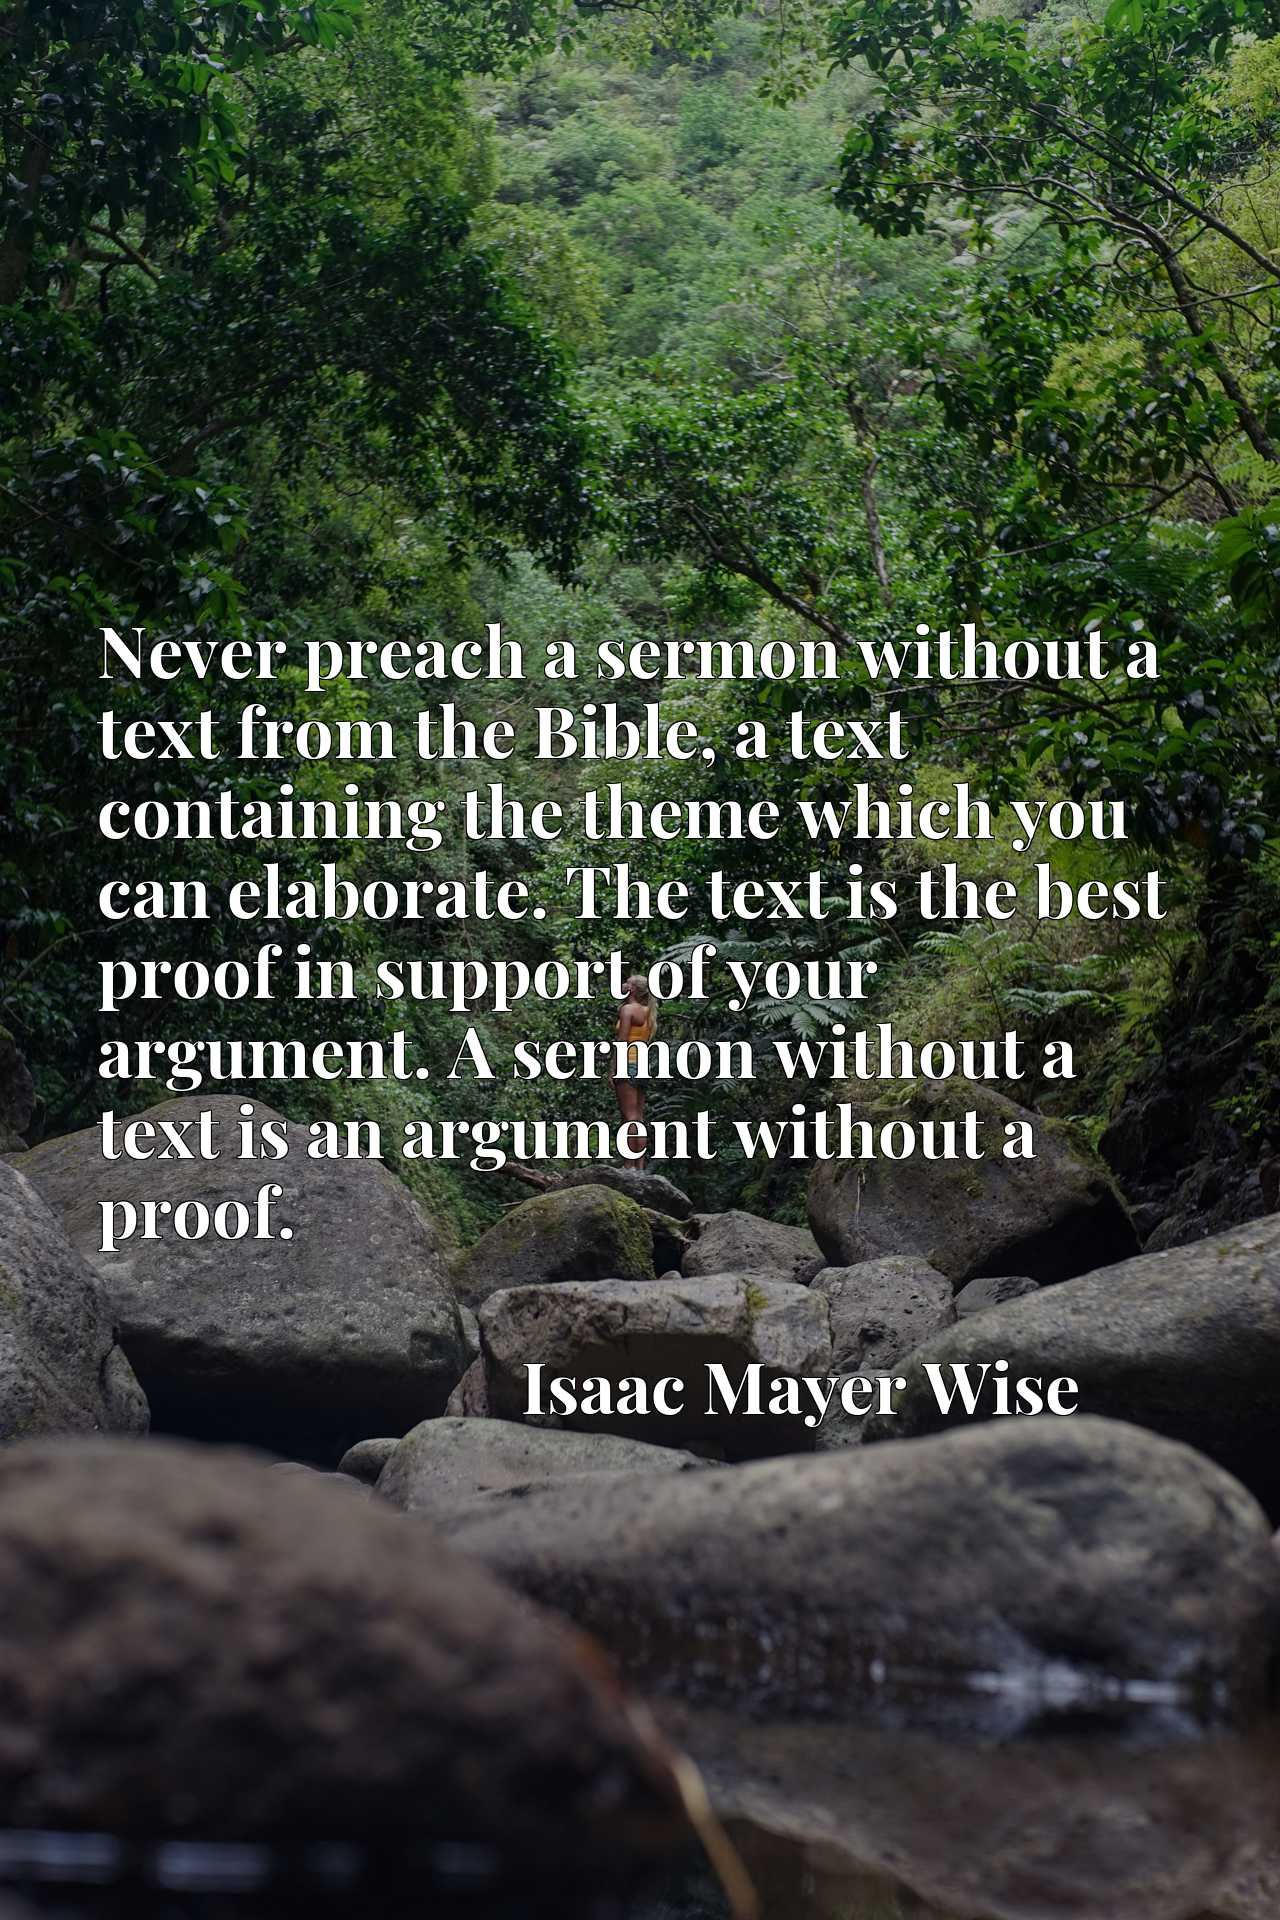 Never preach a sermon without a text from the Bible, a text containing the theme which you can elaborate. The text is the best proof in support of your argument. A sermon without a text is an argument without a proof.